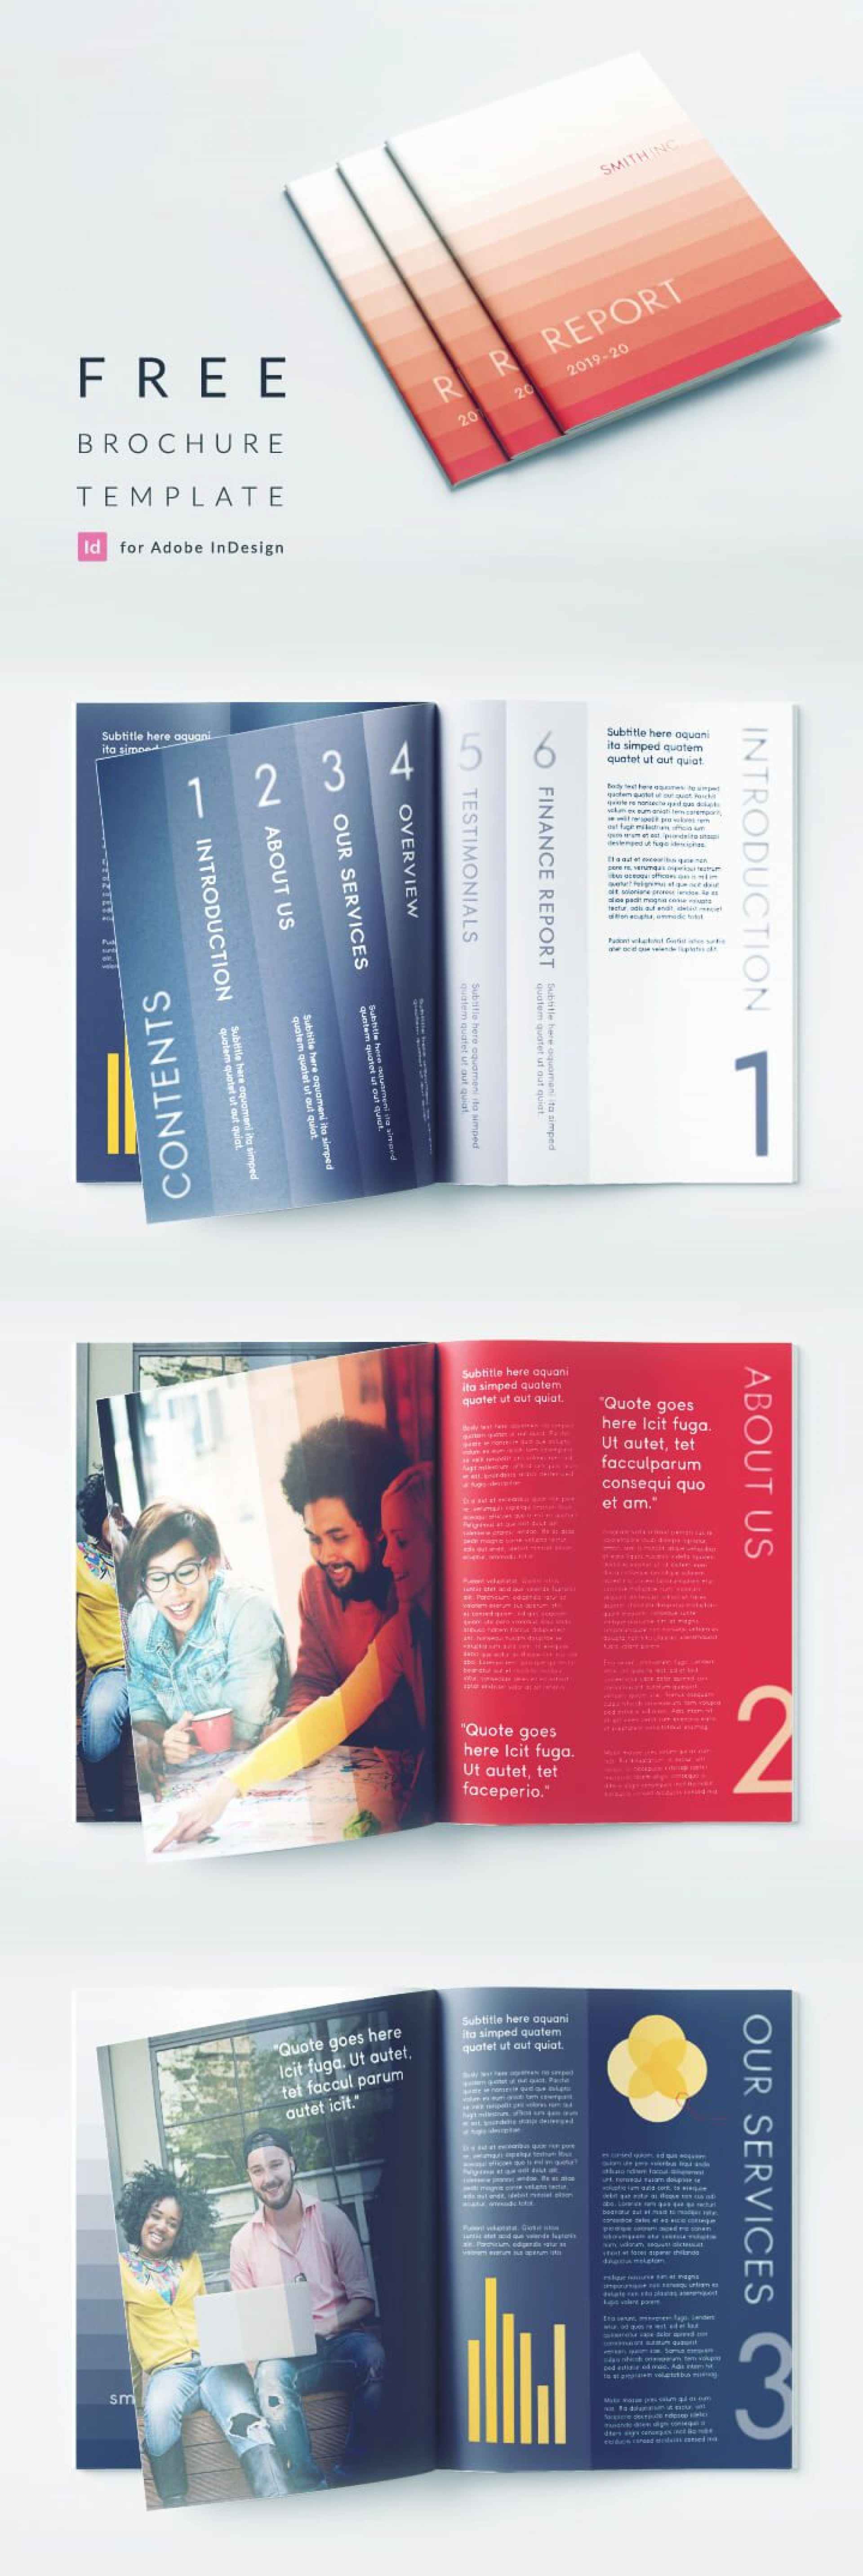 005 Outstanding Adobe Indesign Brochure Template Free Download High Definition 1920